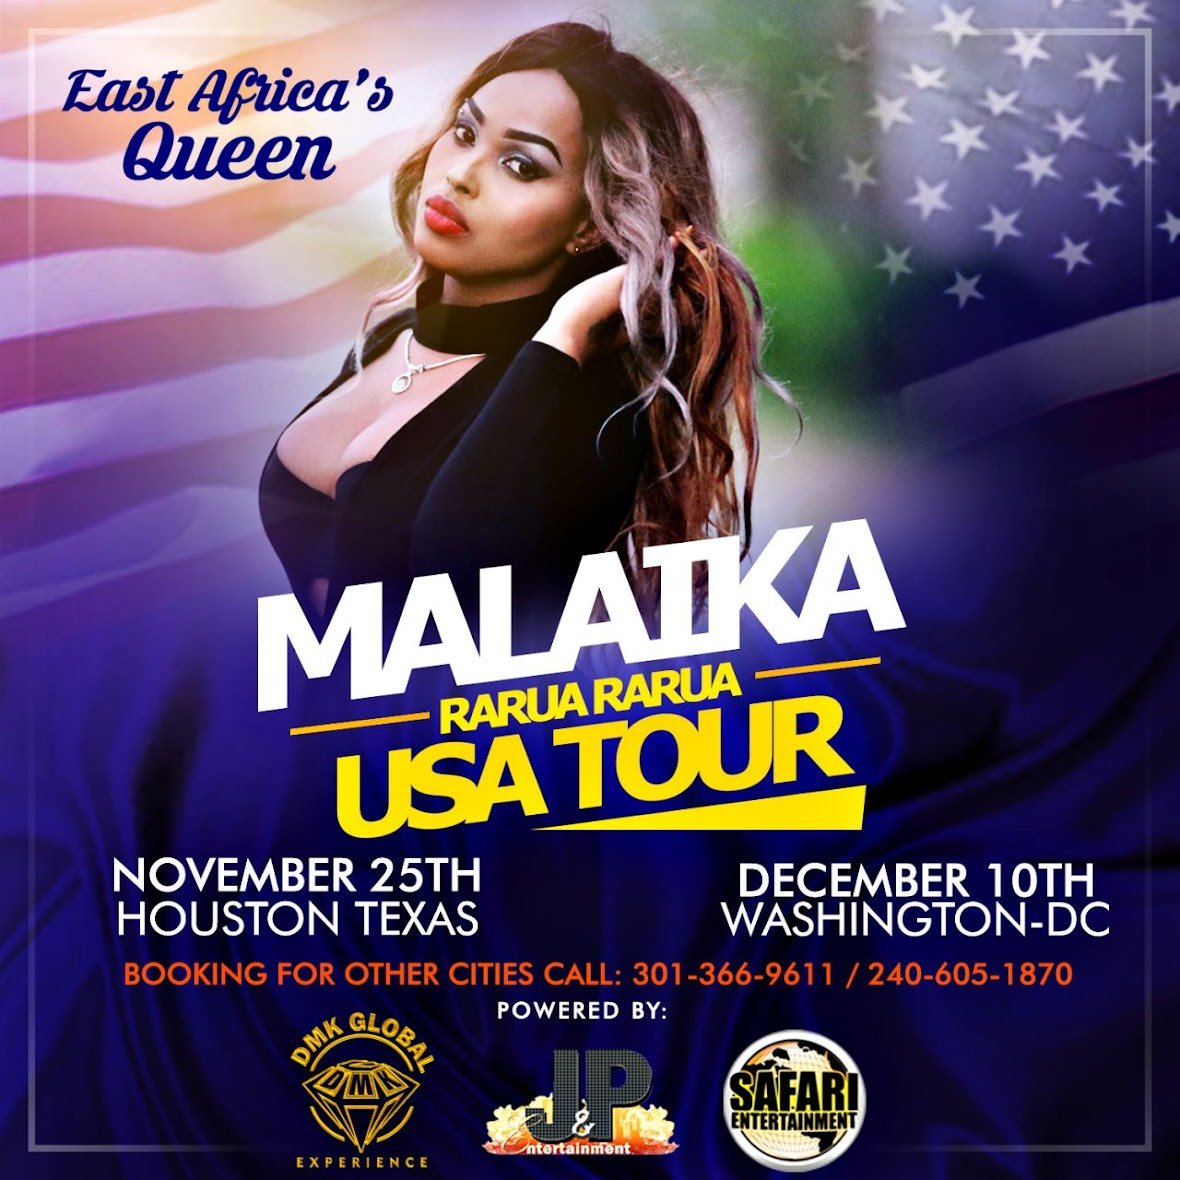 MALAIKA USA TOUR 2016-17